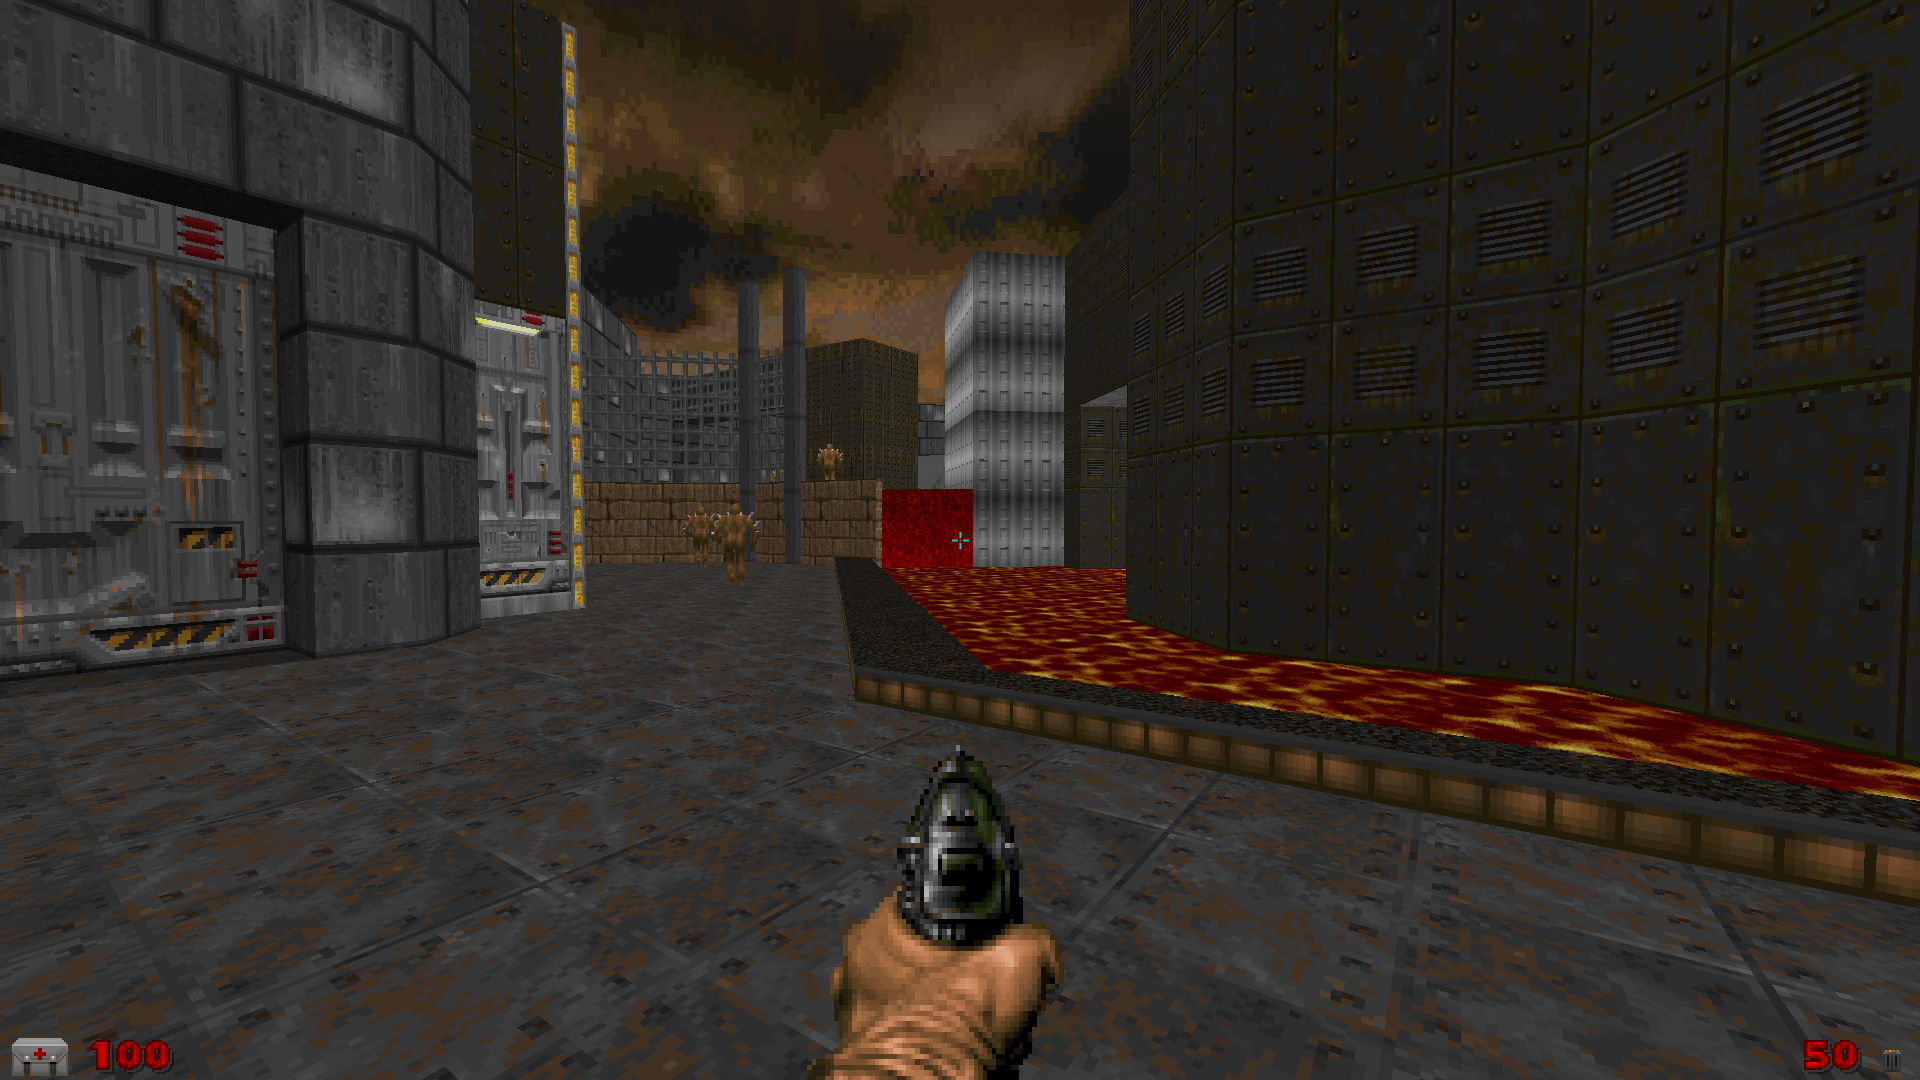 Screenshot_Doom_20200628_180356.png.5954f4c78fb9ee7999f2defd32b70b28.png